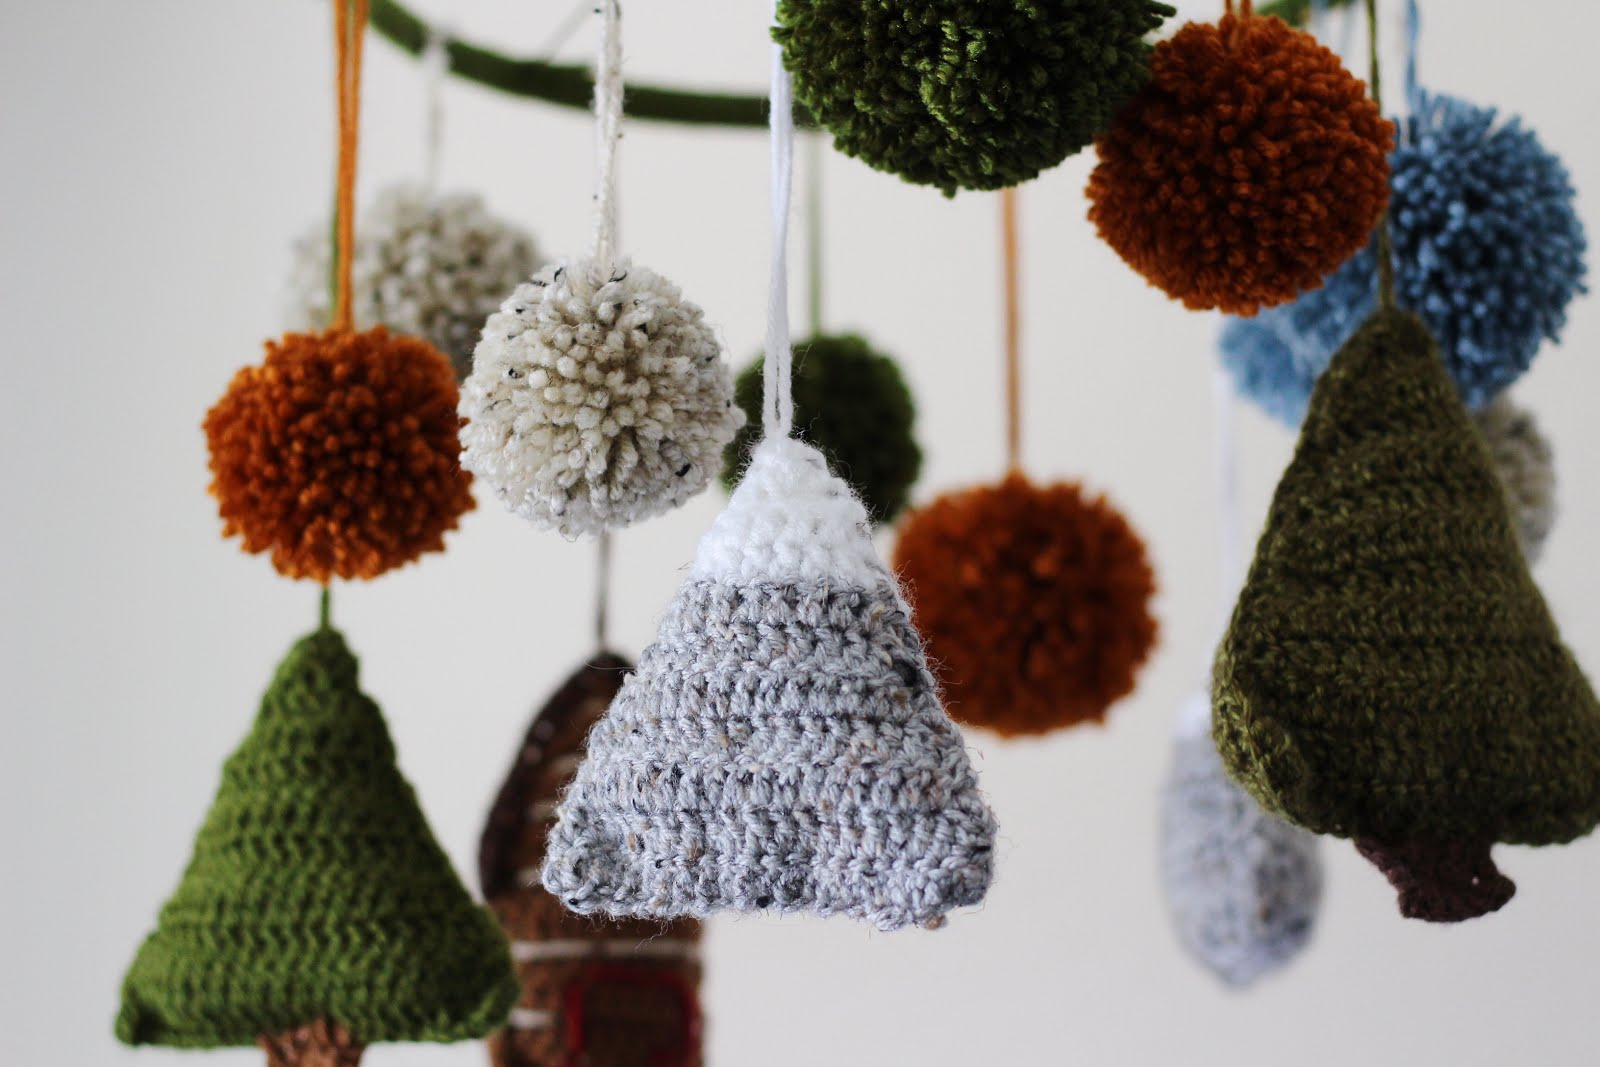 Woodland Baby Mobile - Crochet baby mobiles are colorful, fun and creative. Grab your hook and your favorite type of yarn, and get started on a baby mobile for someone you know. #CrochetBabyMobiles #CrochetPatterns #FreeCrochetPatterns